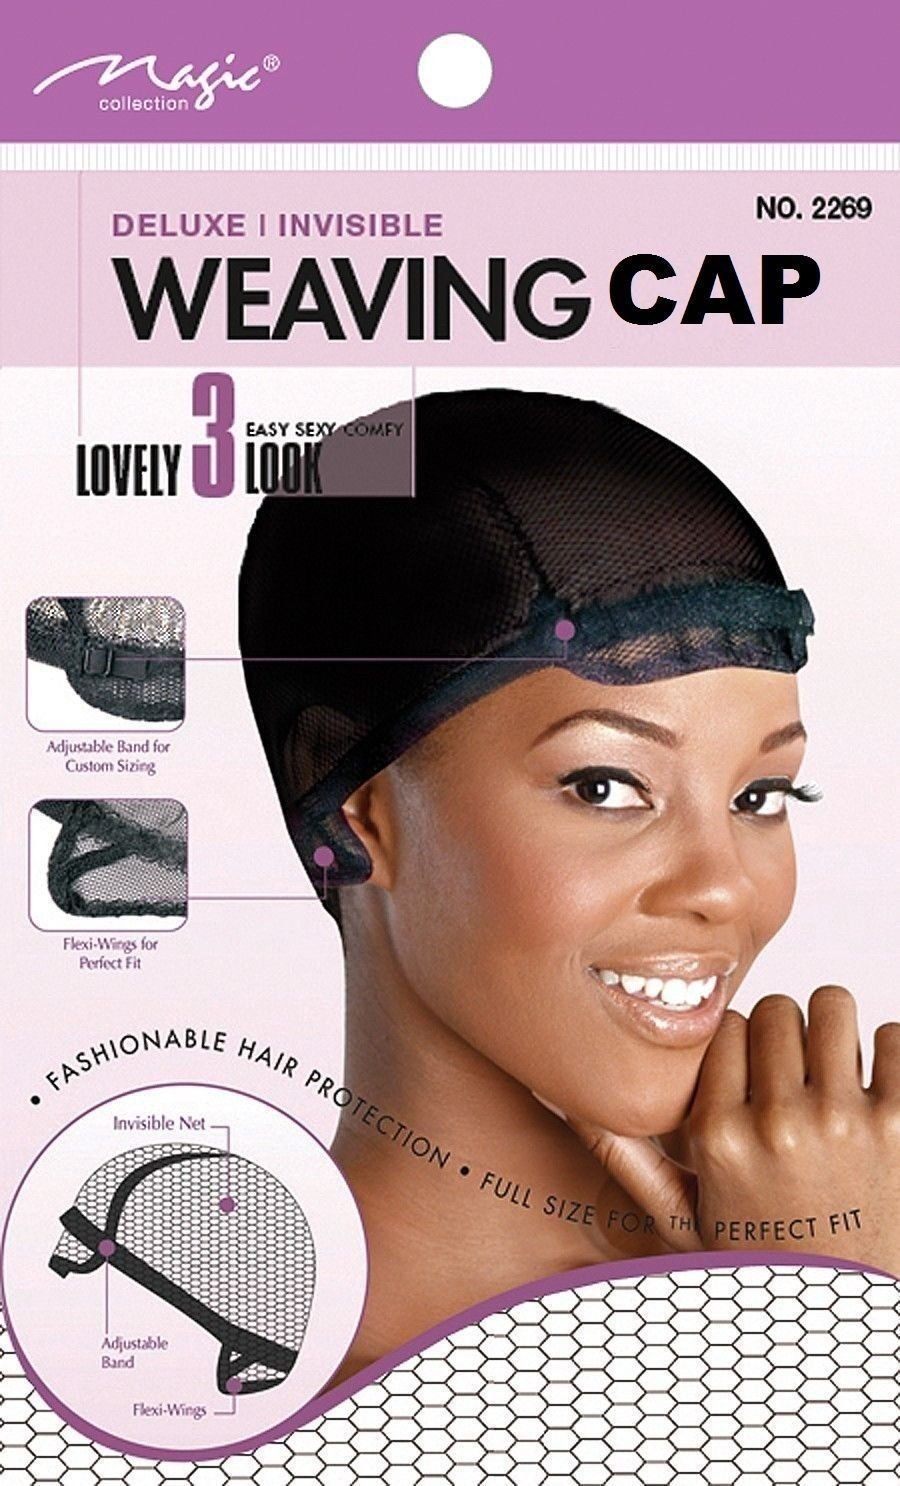 Amazon magic weaving cap deluxe extra large net adjustable amazon magic weaving cap deluxe extra large net adjustable band invisible 2269 fashionable hair protection full size perfect fit 6 pack beauty pmusecretfo Images